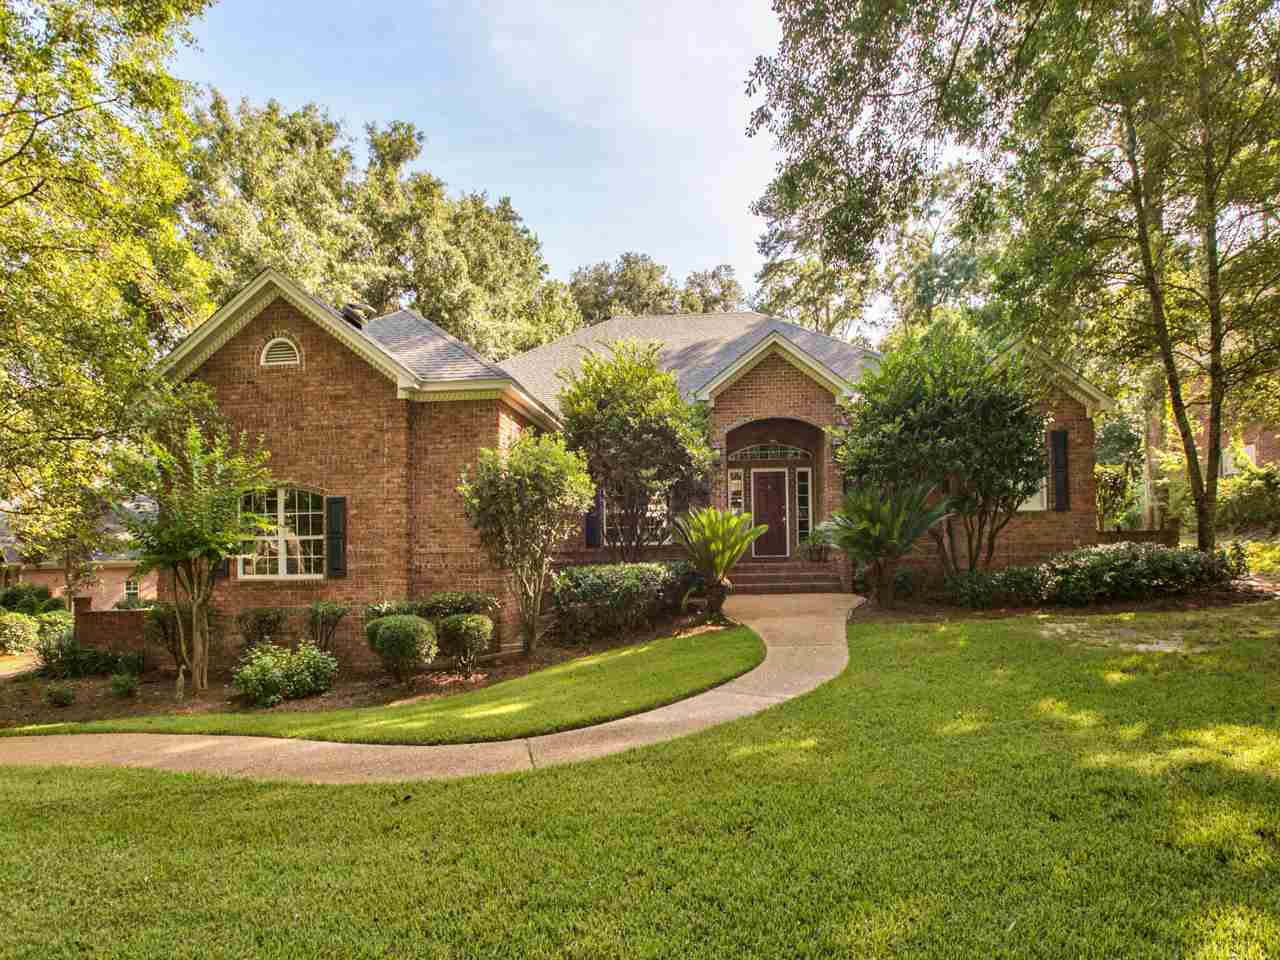 $575,000 - 5Br/5Ba -  for Sale in Golden Eagle, Tallahassee